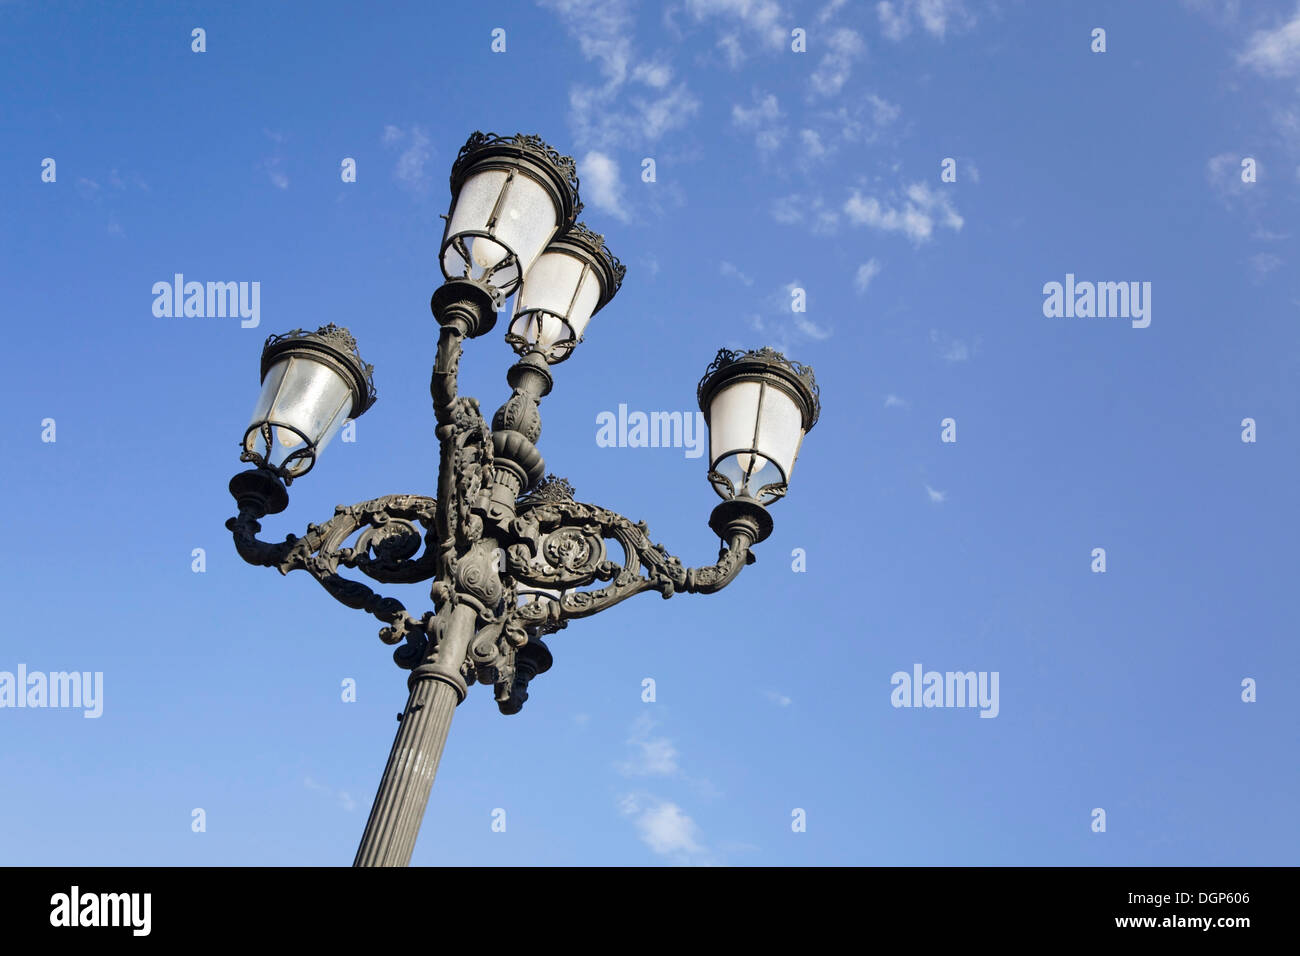 Street-lamp on Plaza de la Virgen, Valencia, Comunidad Valenciana, Spain, Europe Stock Photo